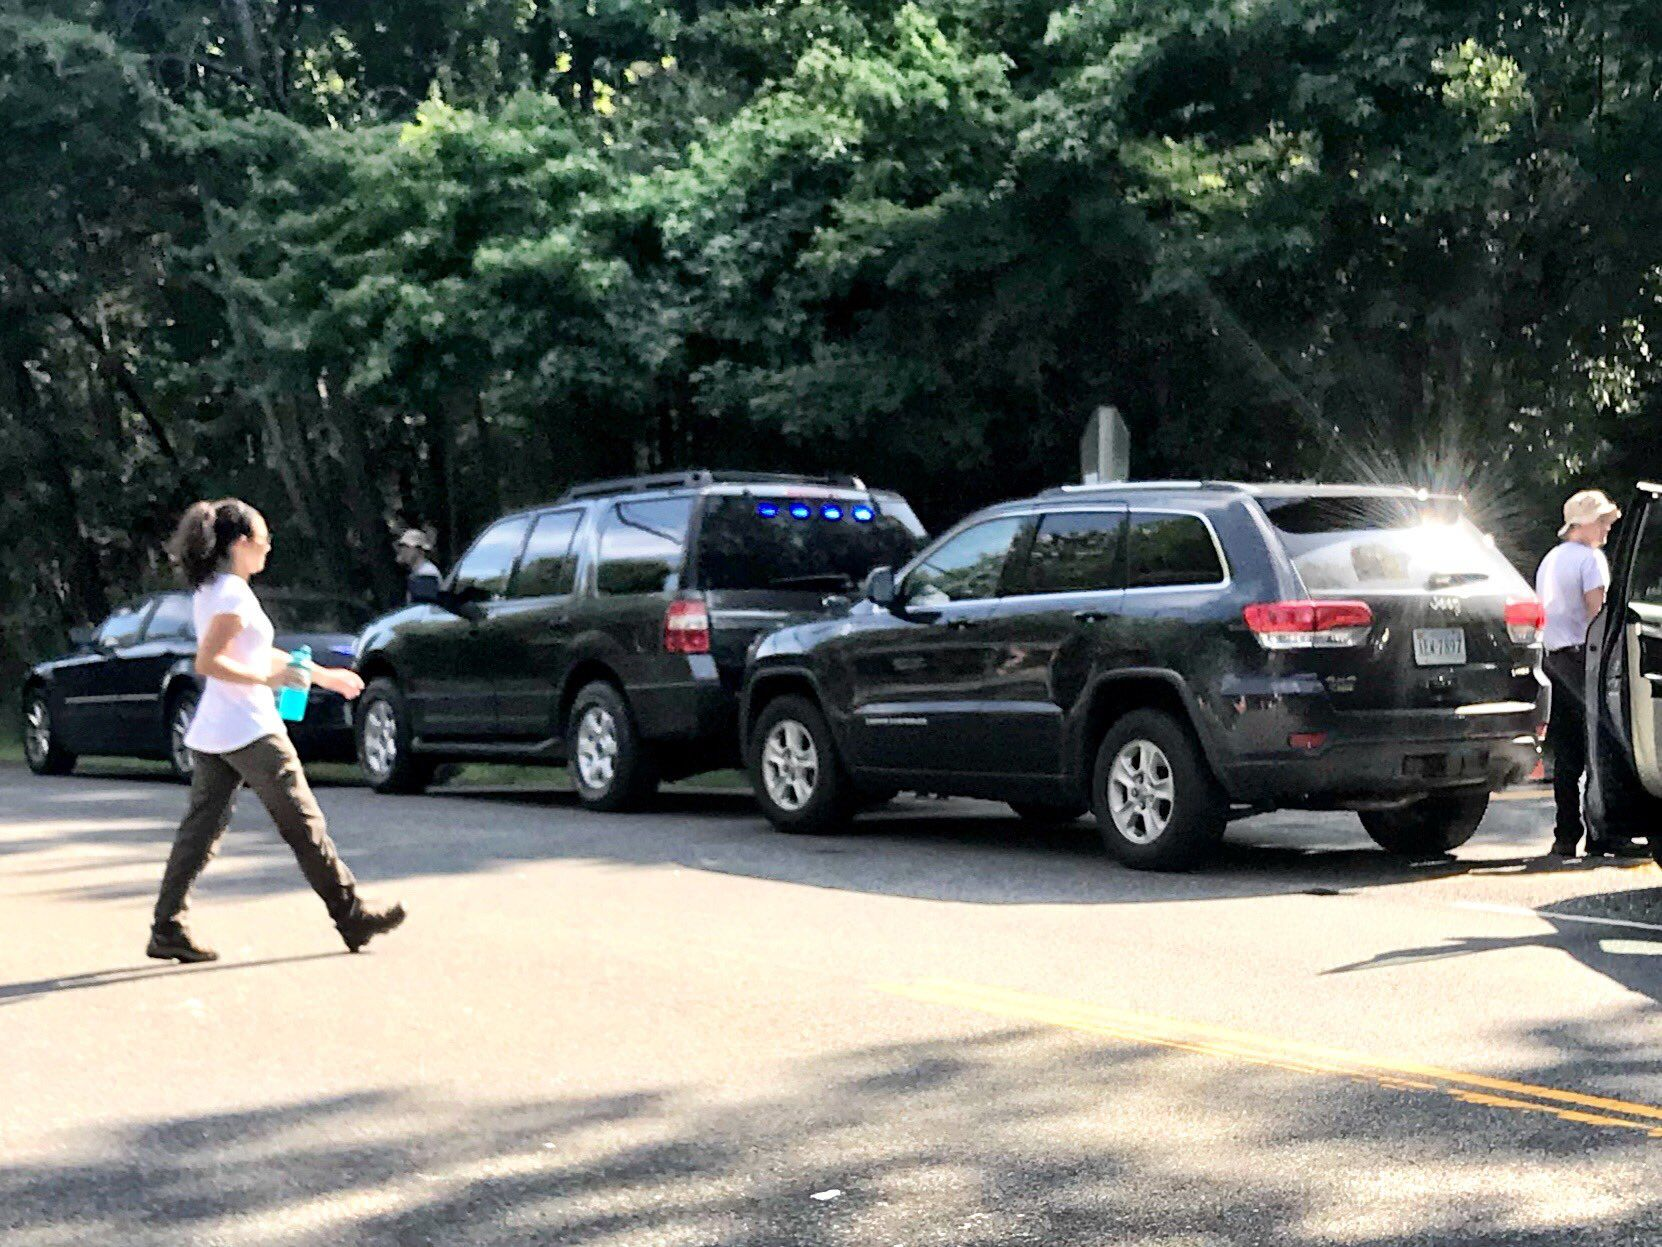 A Jeep Grand Cherokee, similar to what Bijan Ghaisar was driving, has been brought to intersection where he was shot, as part of an FBI crime scene investigation. (WTOP/Neal Augenstein)